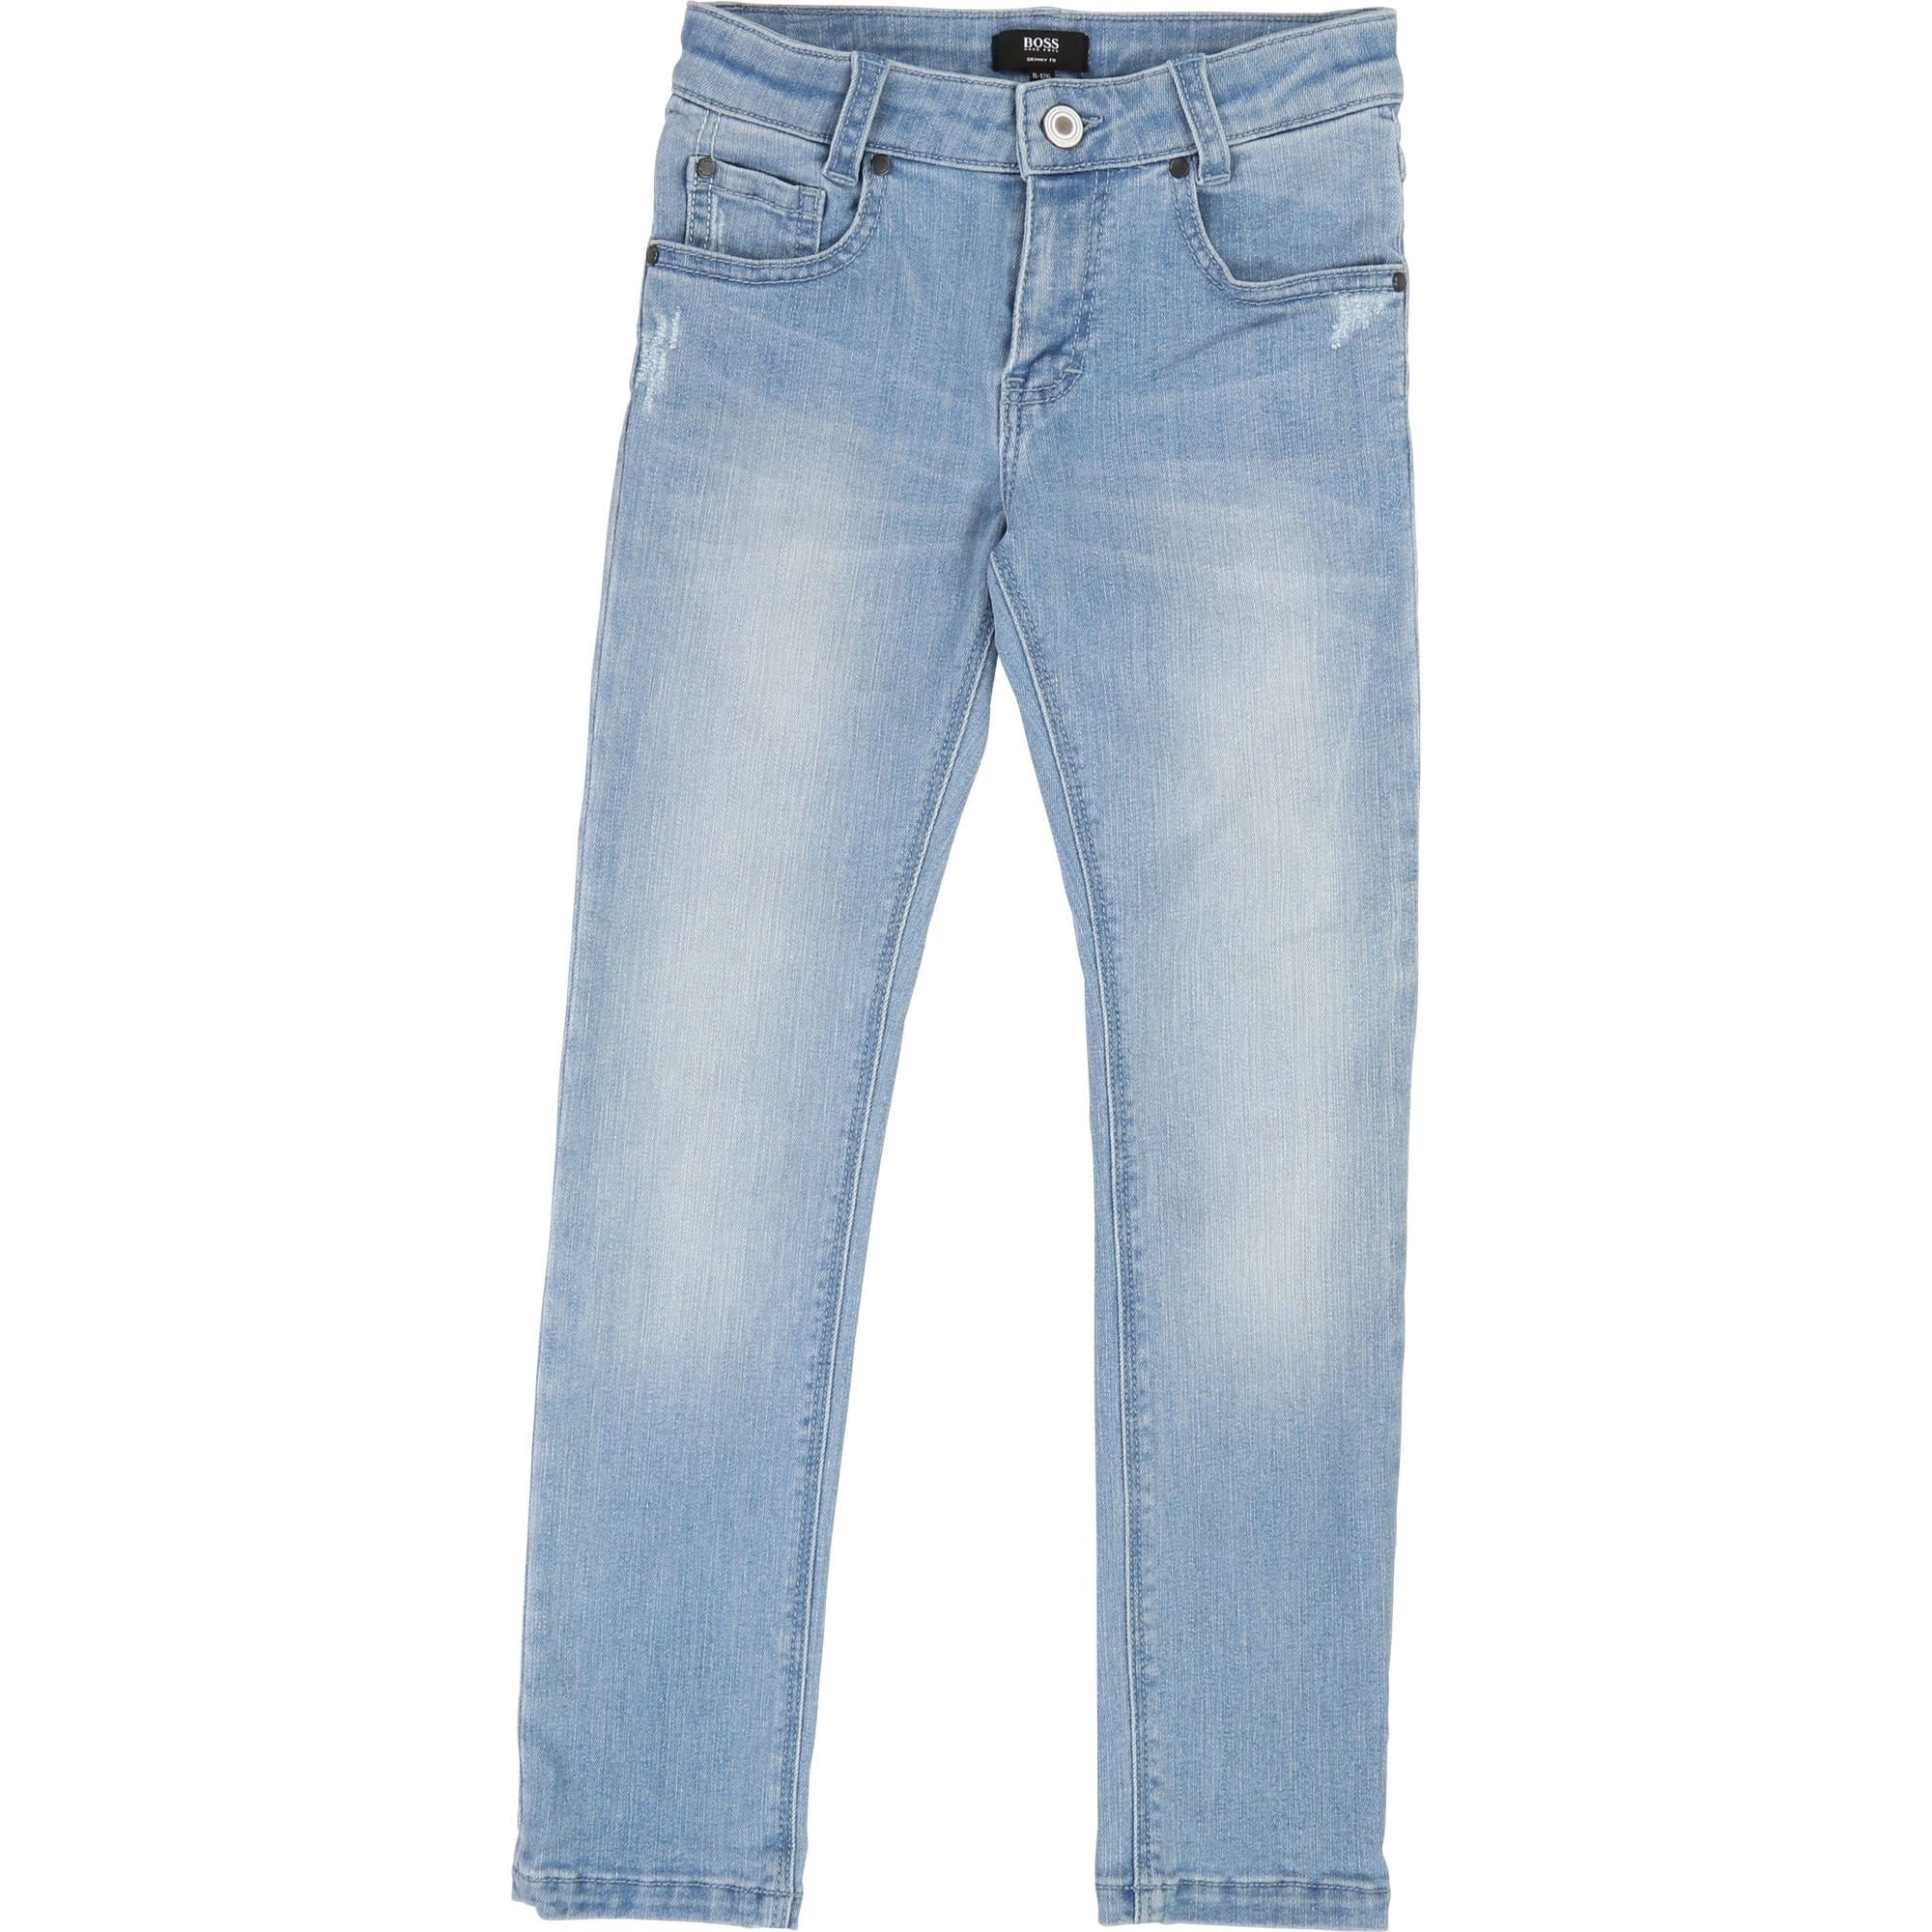 Hugo Boss Denim Jeans (4715384832131)